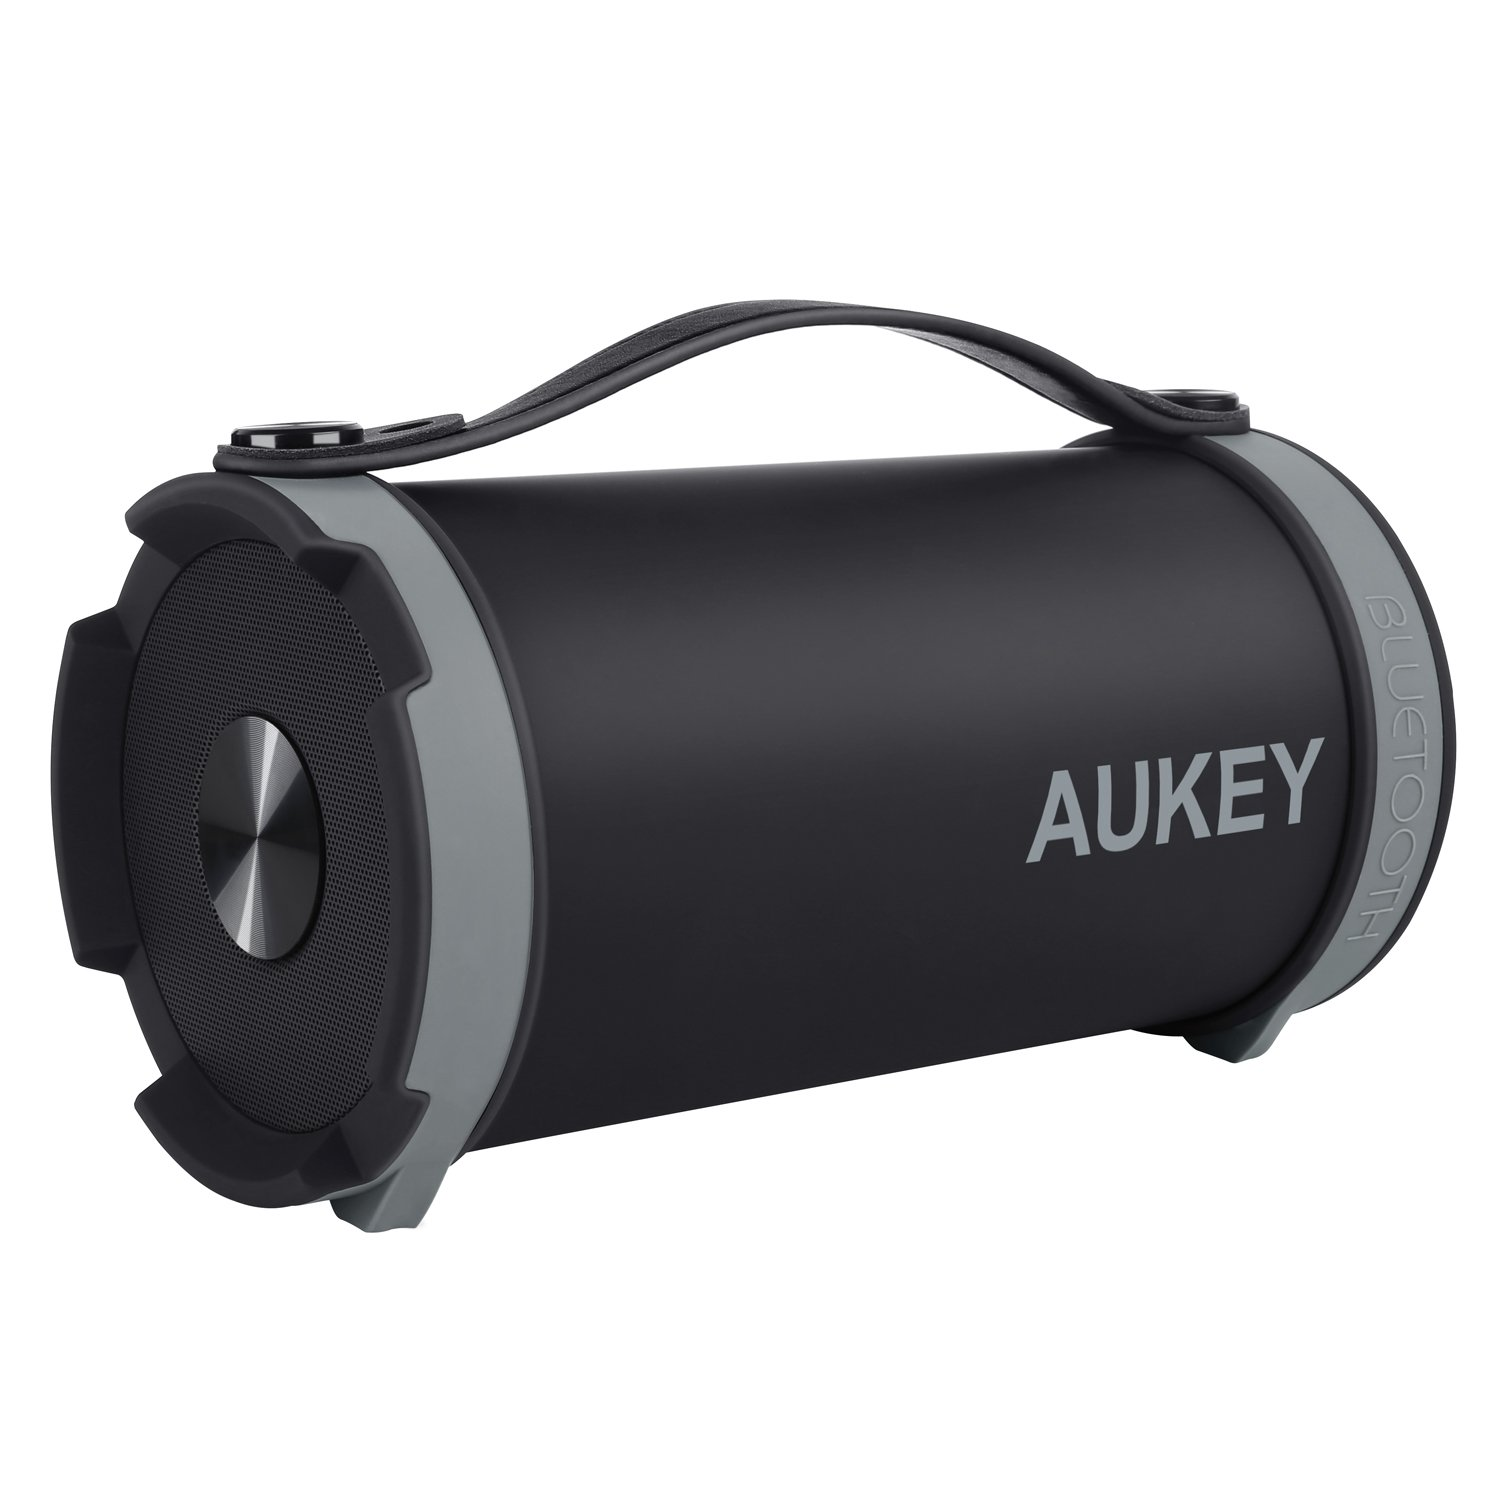 AUKEY Altoparlante Wireless con Radio FM